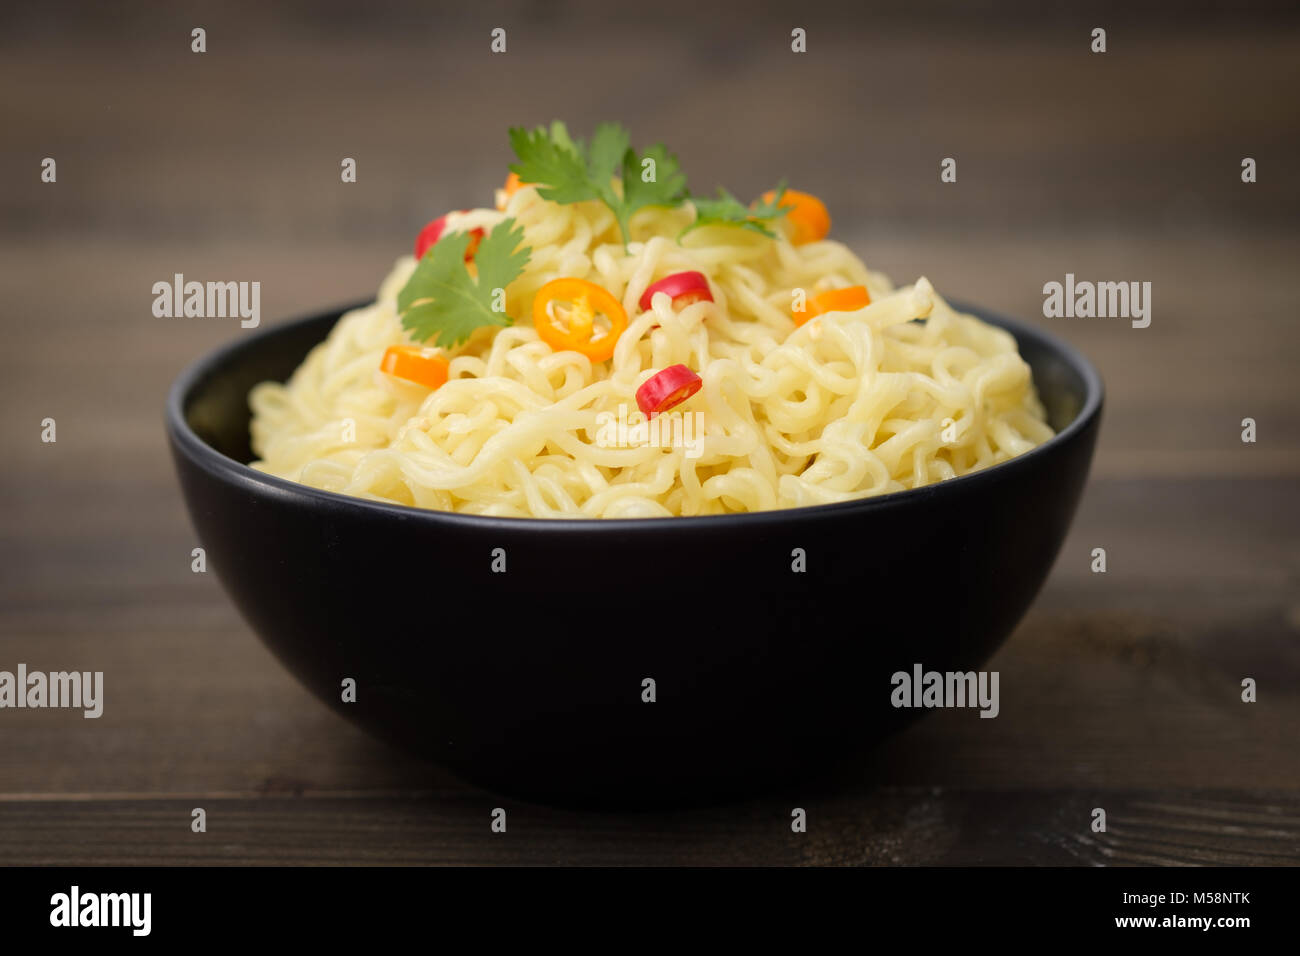 Still life instant noodles with pepper on wooden table, junk food or fast food concept. - Stock Image